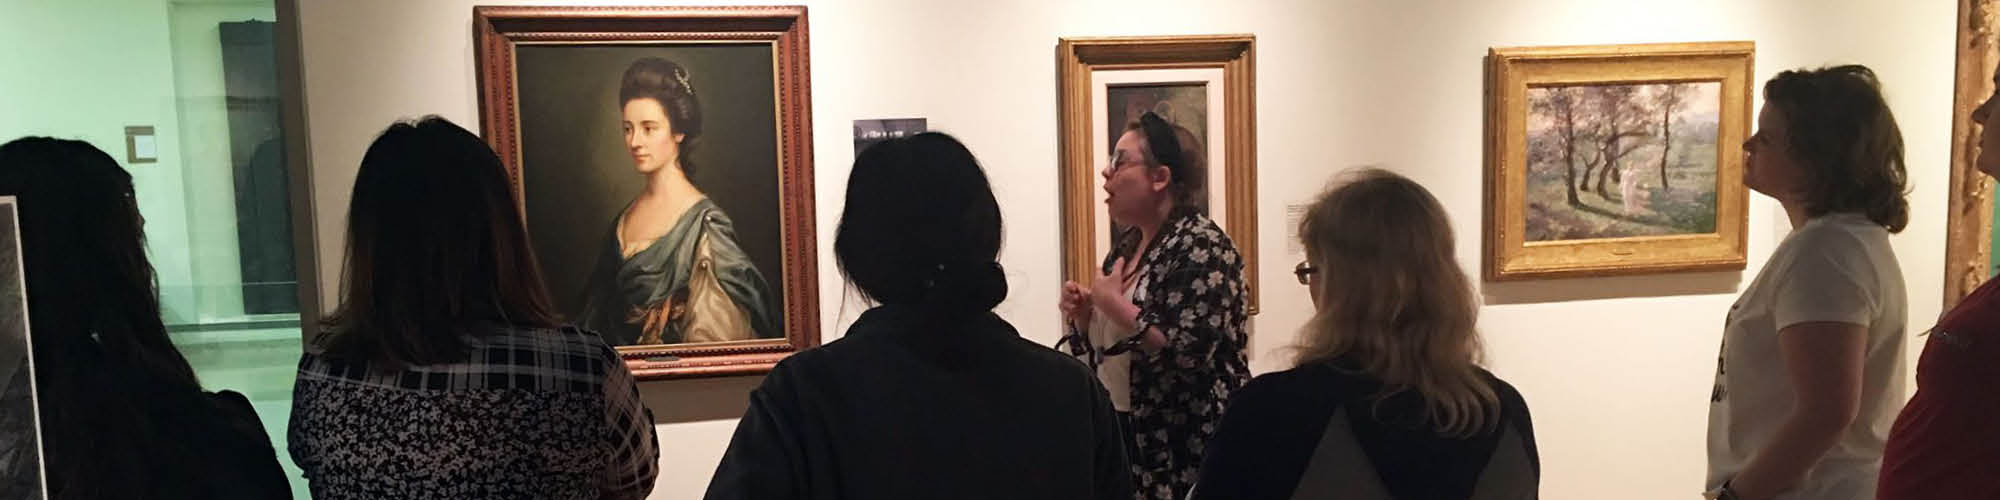 Female gallery staff member talks to a group of women in the gallery as they all look at a portrait of a Victorian era woman on the wall.